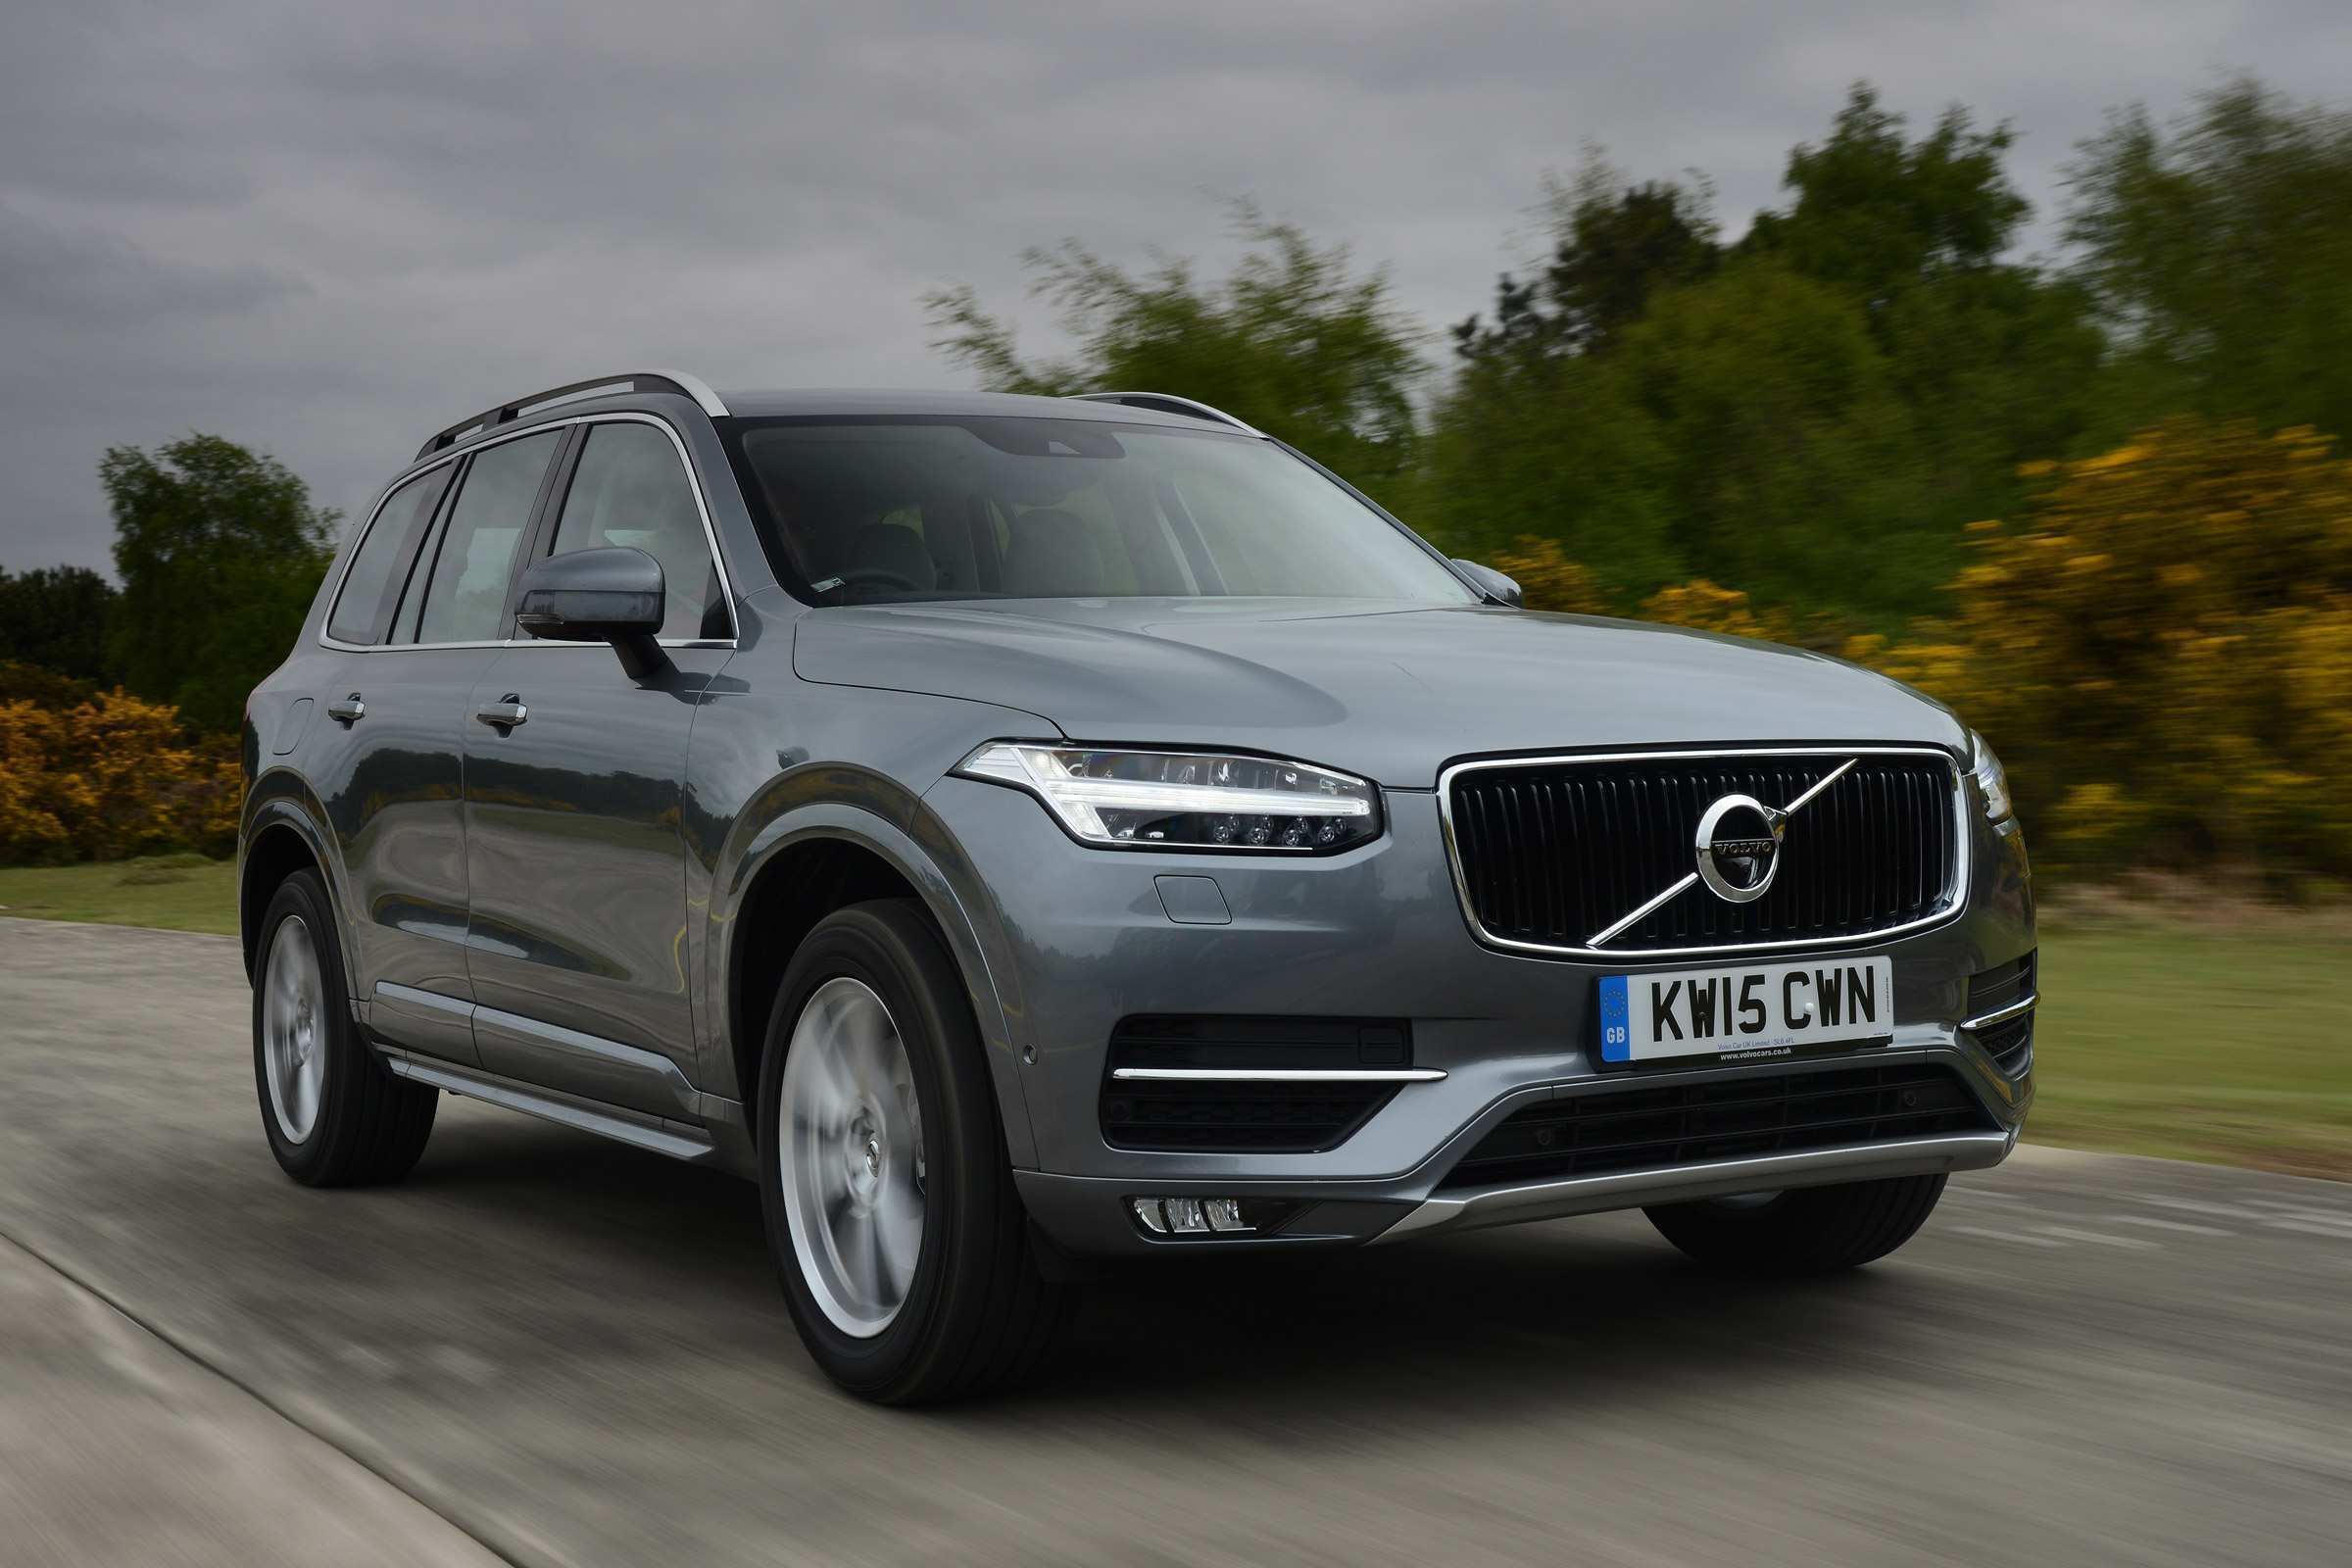 51 All New Volvo Xc90 Facelift 2020 Uk First Drive